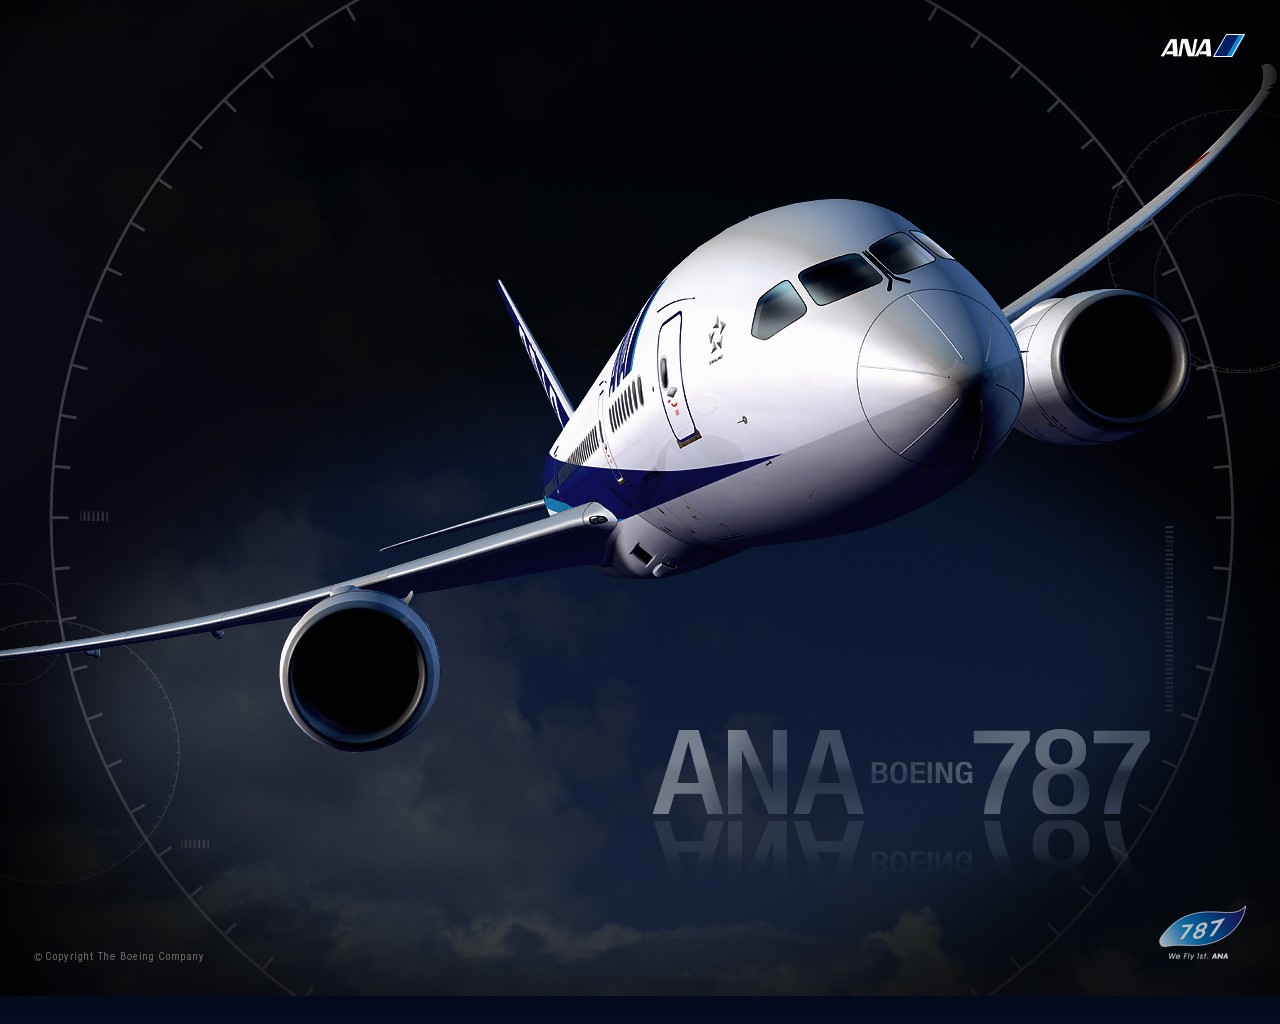 ANA All Nippon Airways Boeing Dreamliner wallpaper 30322